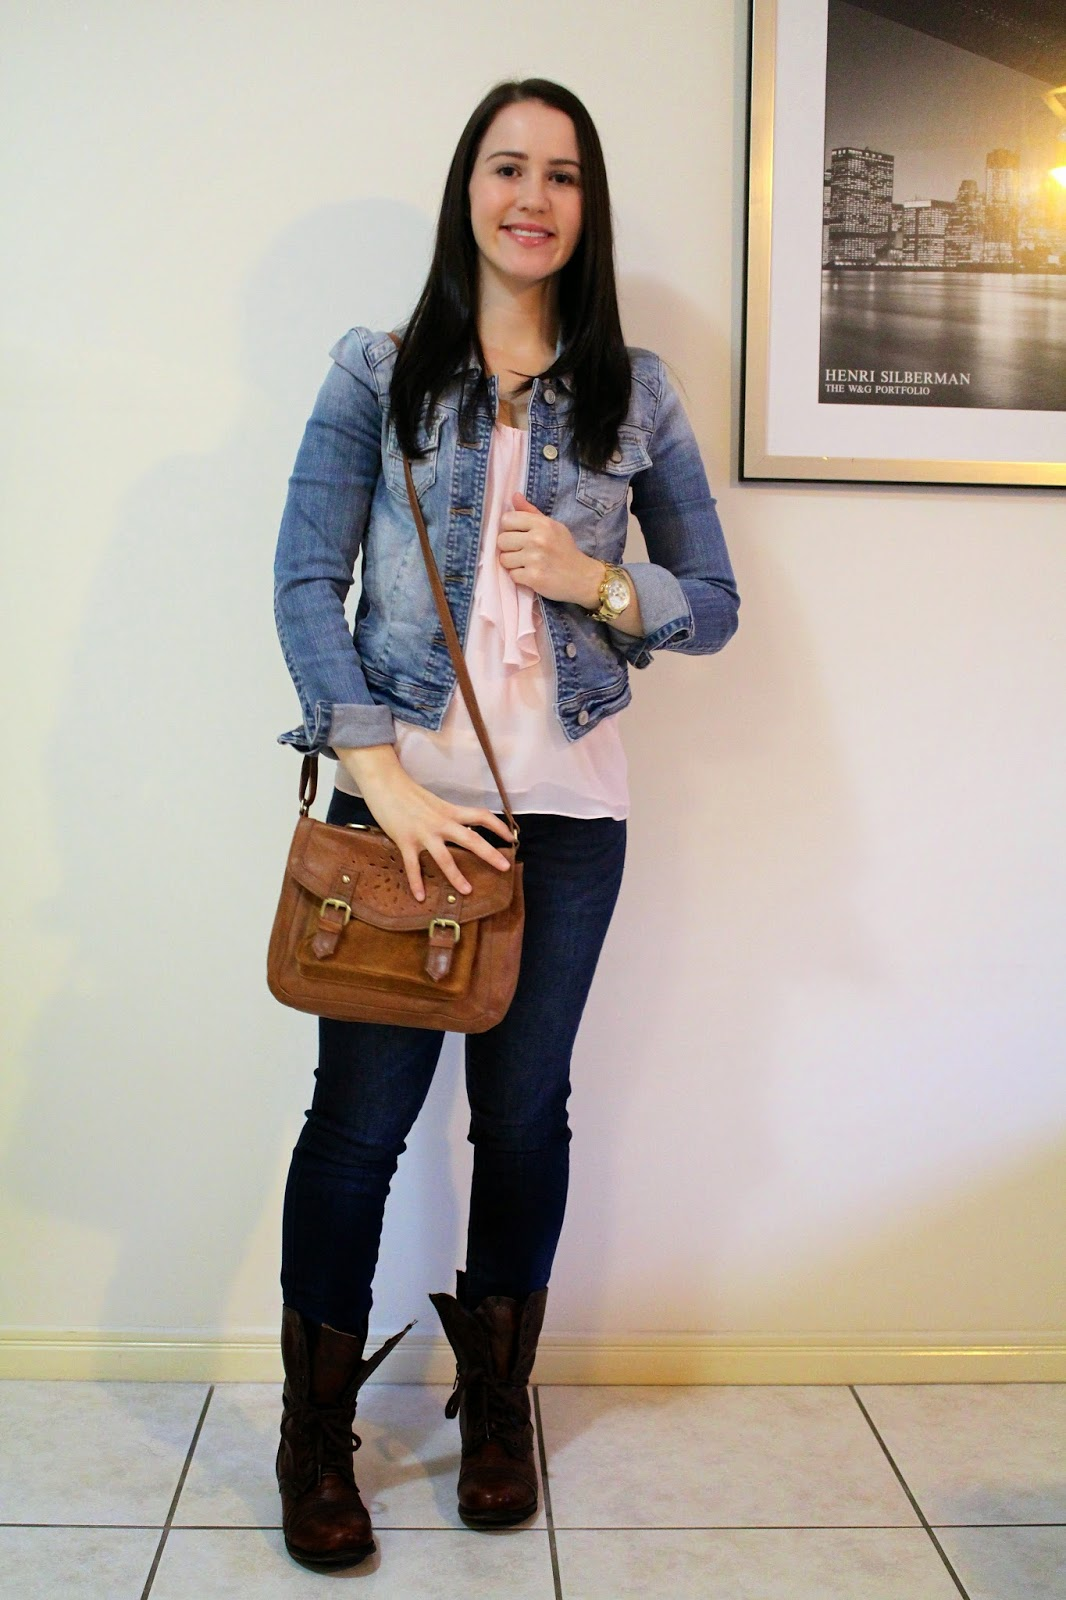 dark wash denim jeans, blush camisole top, denim jacket, brown combat boots, brown satchel bags, gold michael kors watch, uni outfit, college outfit, everyday outfit, petite outfit, fashion, ootd,